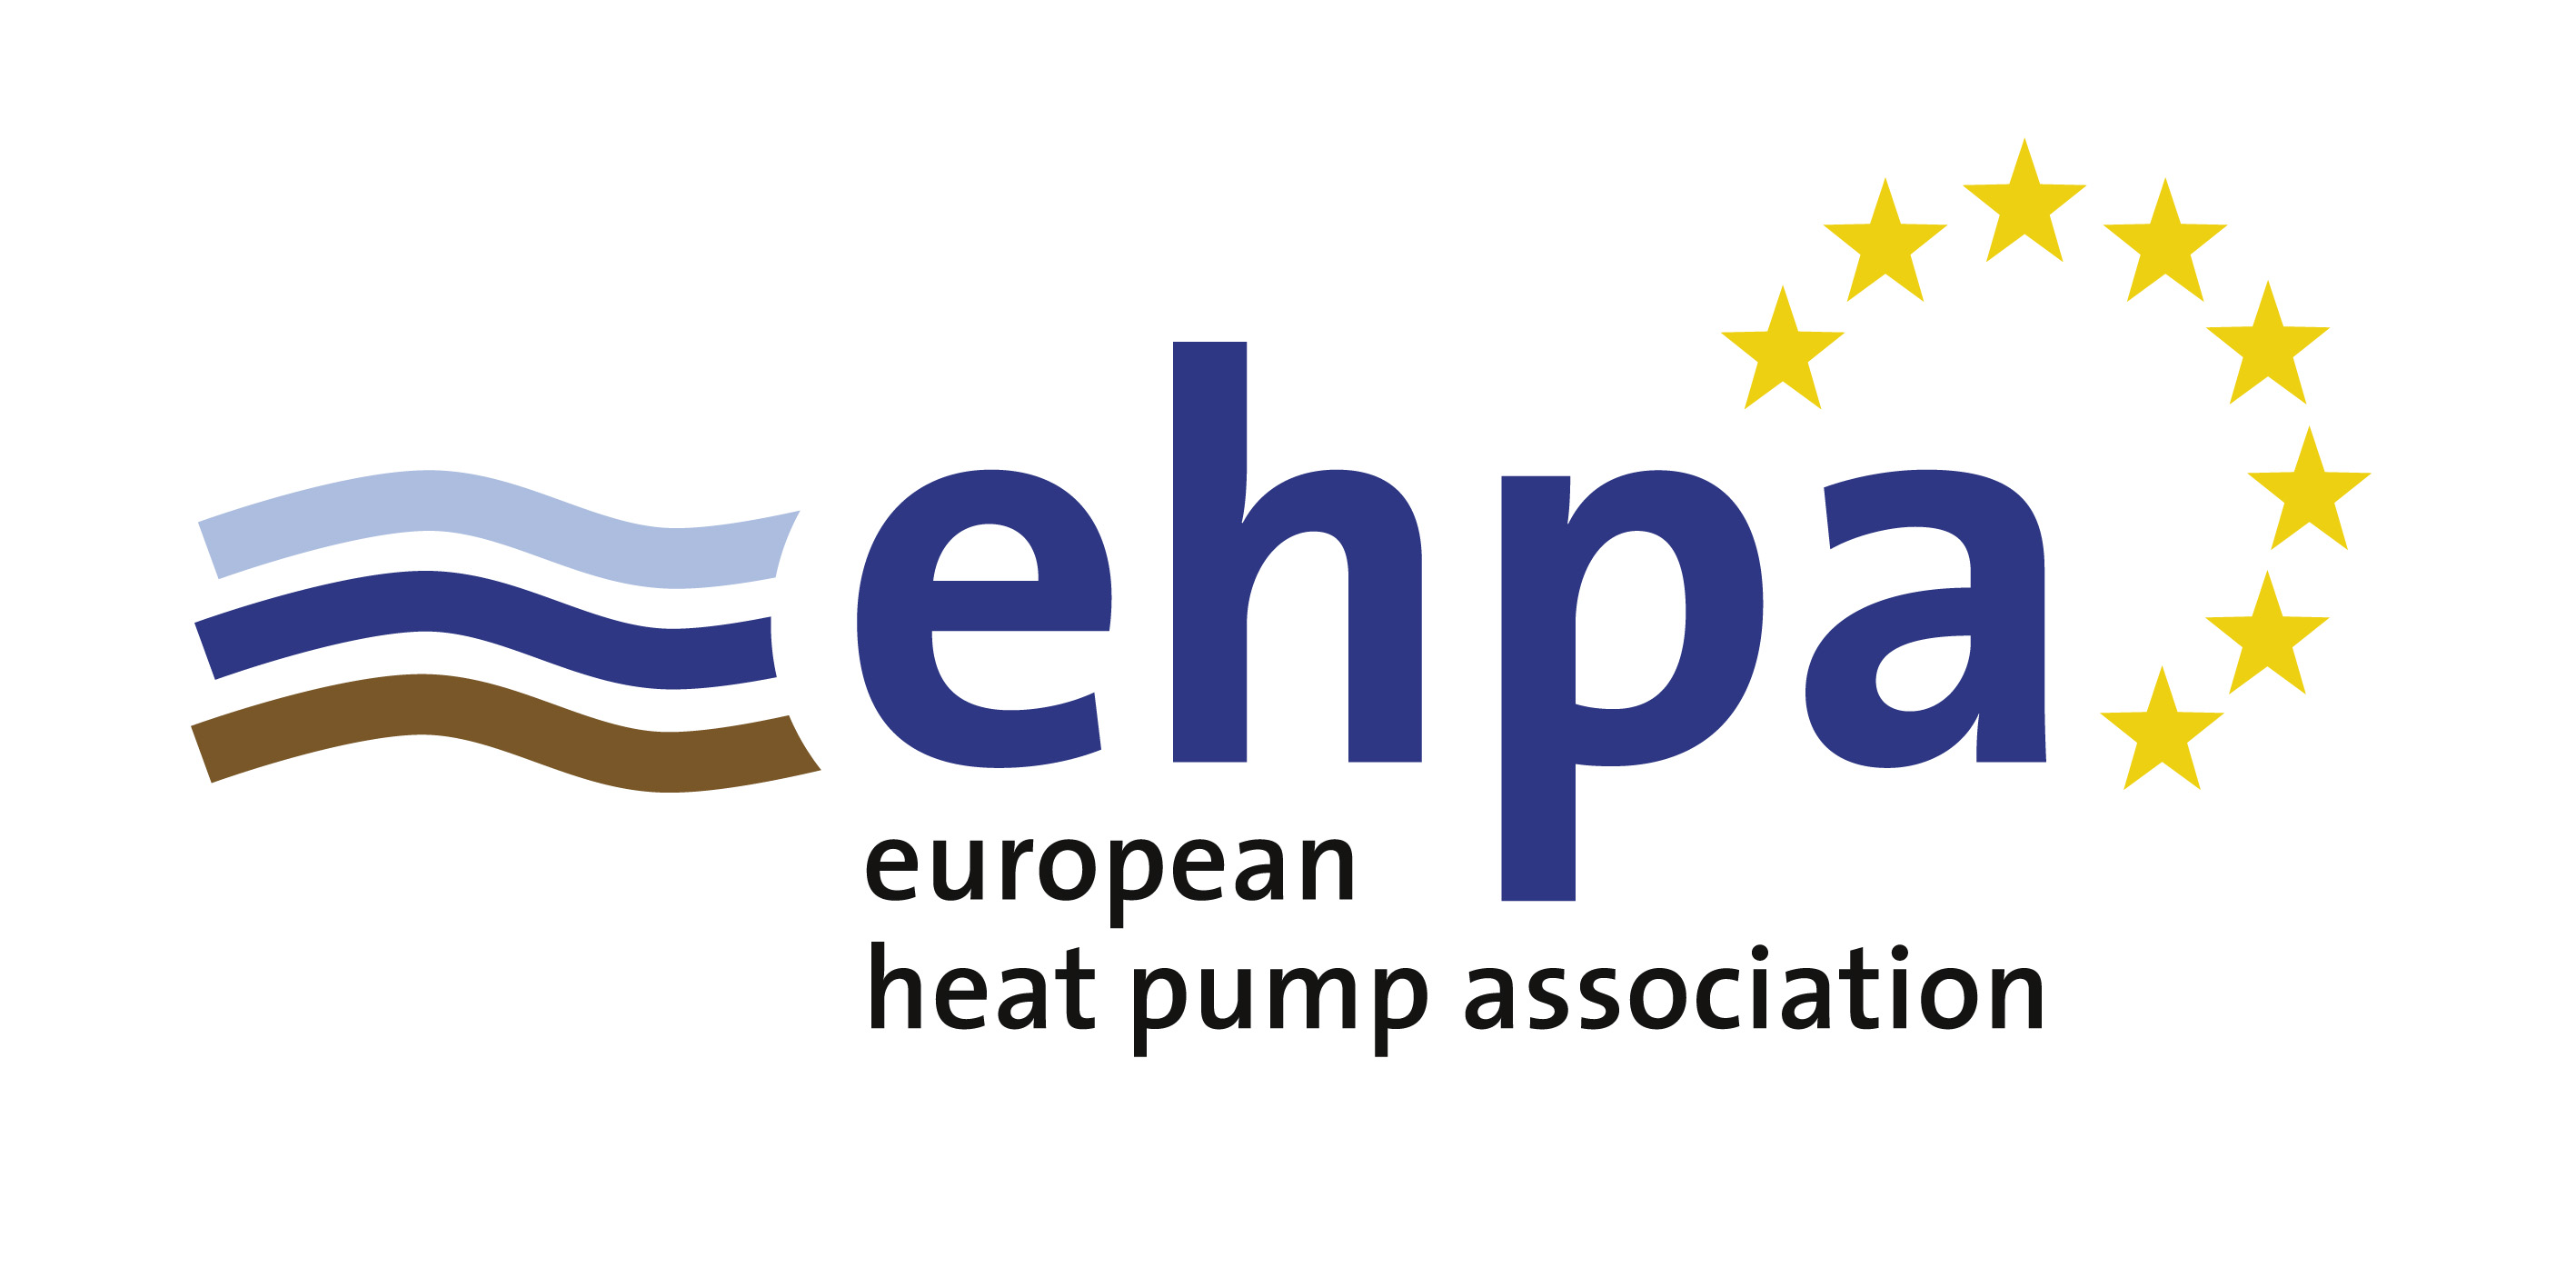 European Heat Pump Association